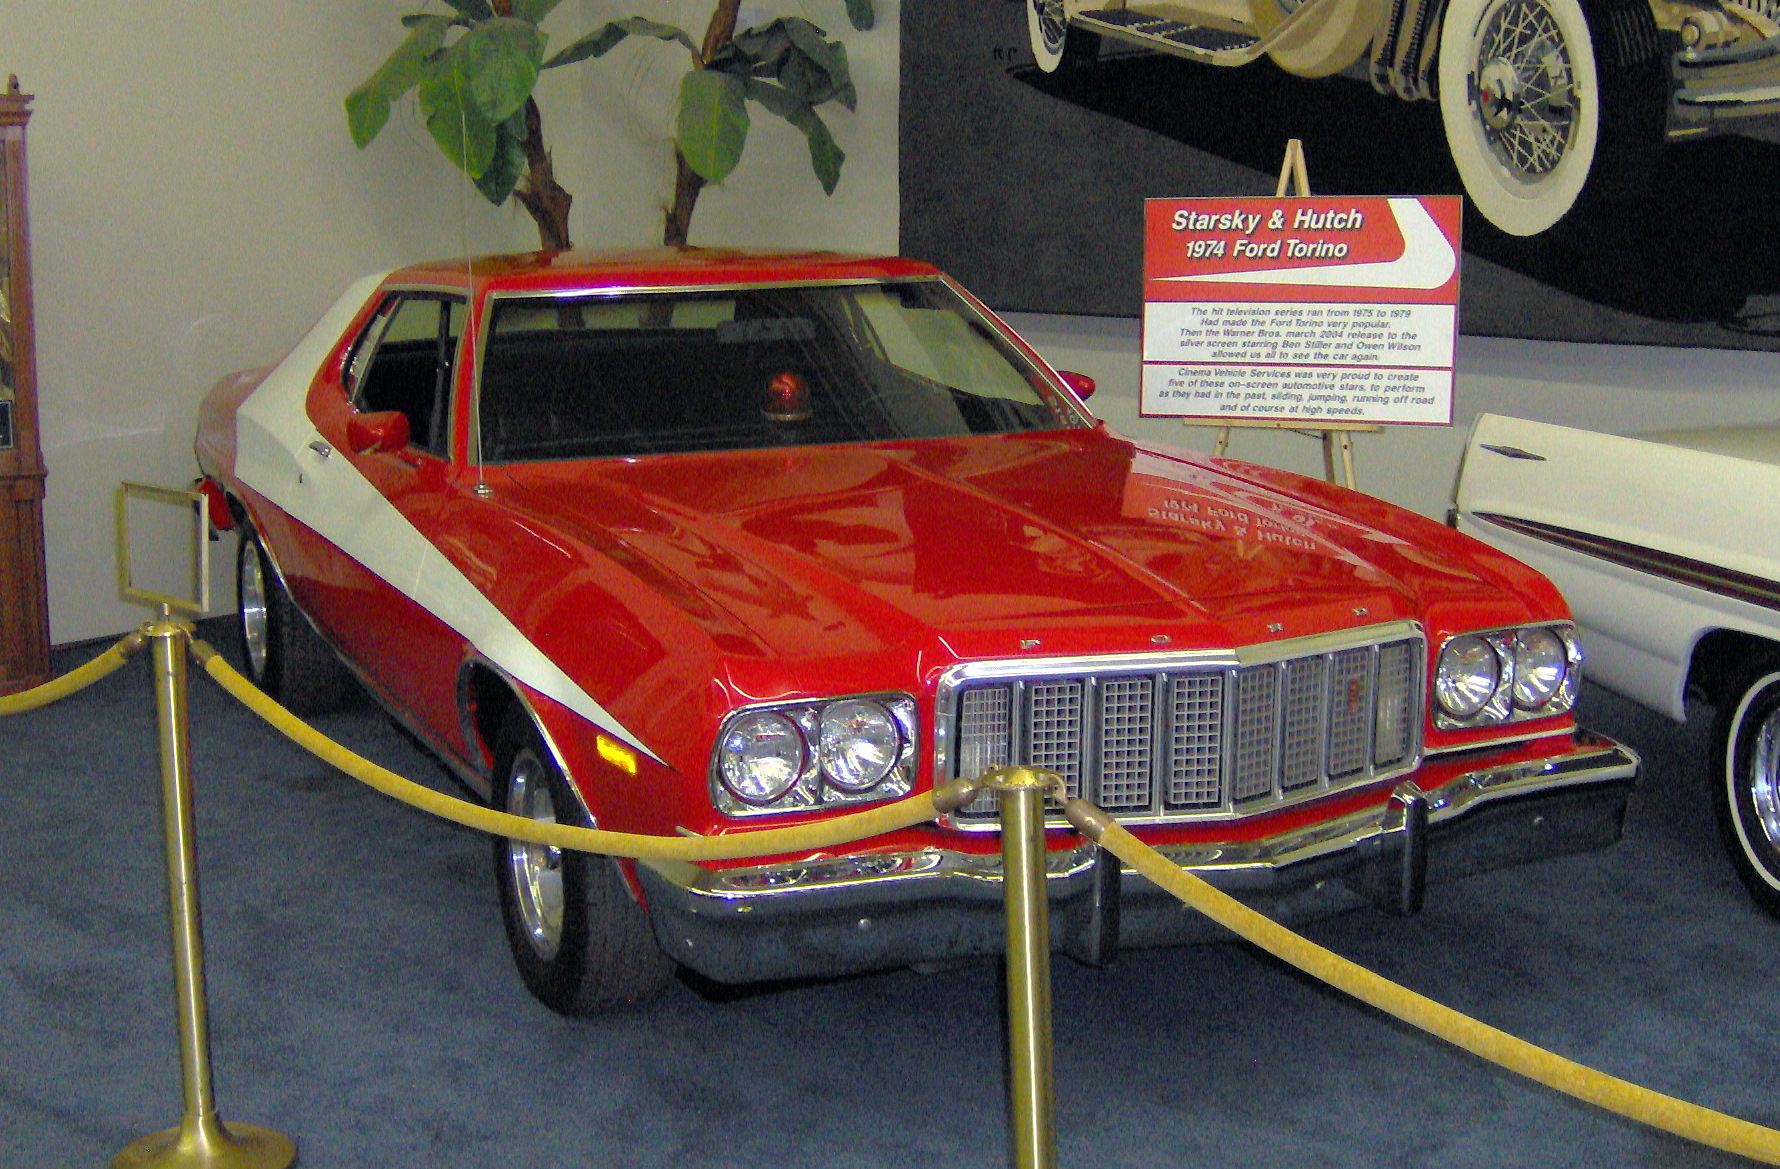 file 1974 ford torino from starsky hutch jpg wikimedia commons. Black Bedroom Furniture Sets. Home Design Ideas